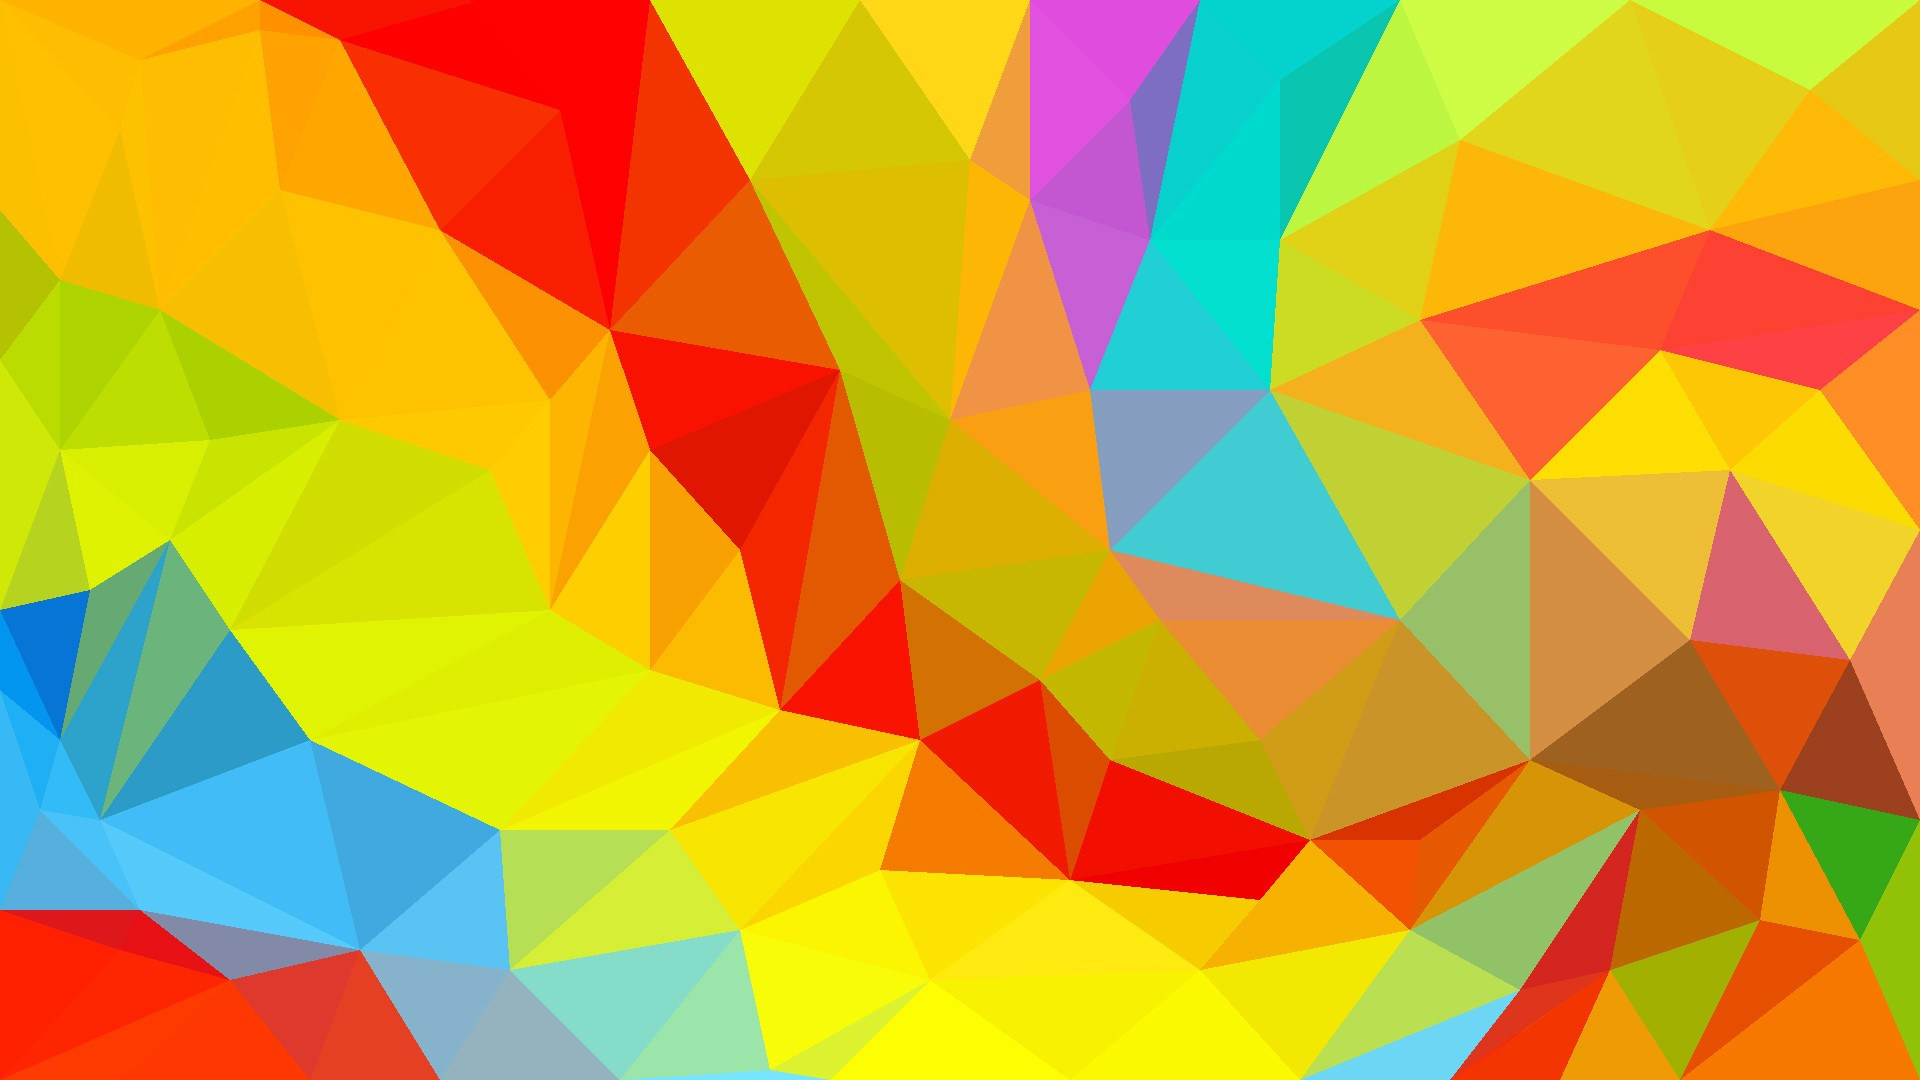 digital art low poly colorful abstract